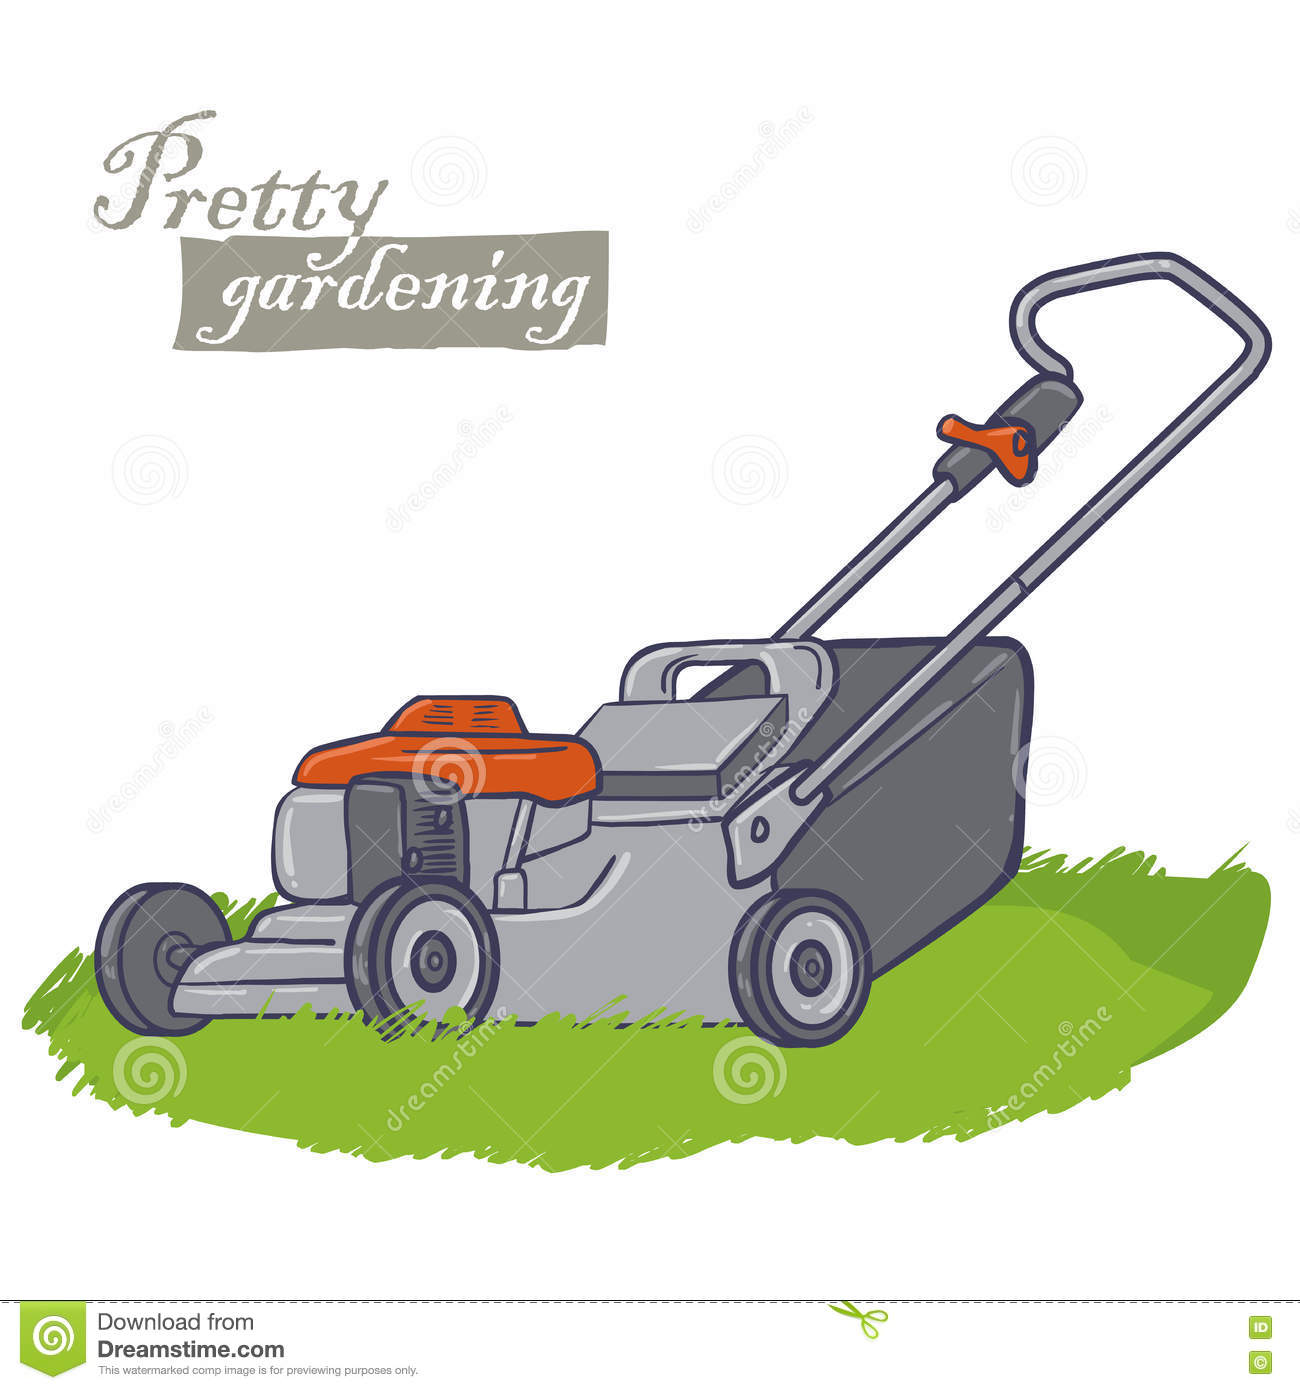 Garden Electric Tools Stock Vector Illustration Of Plant